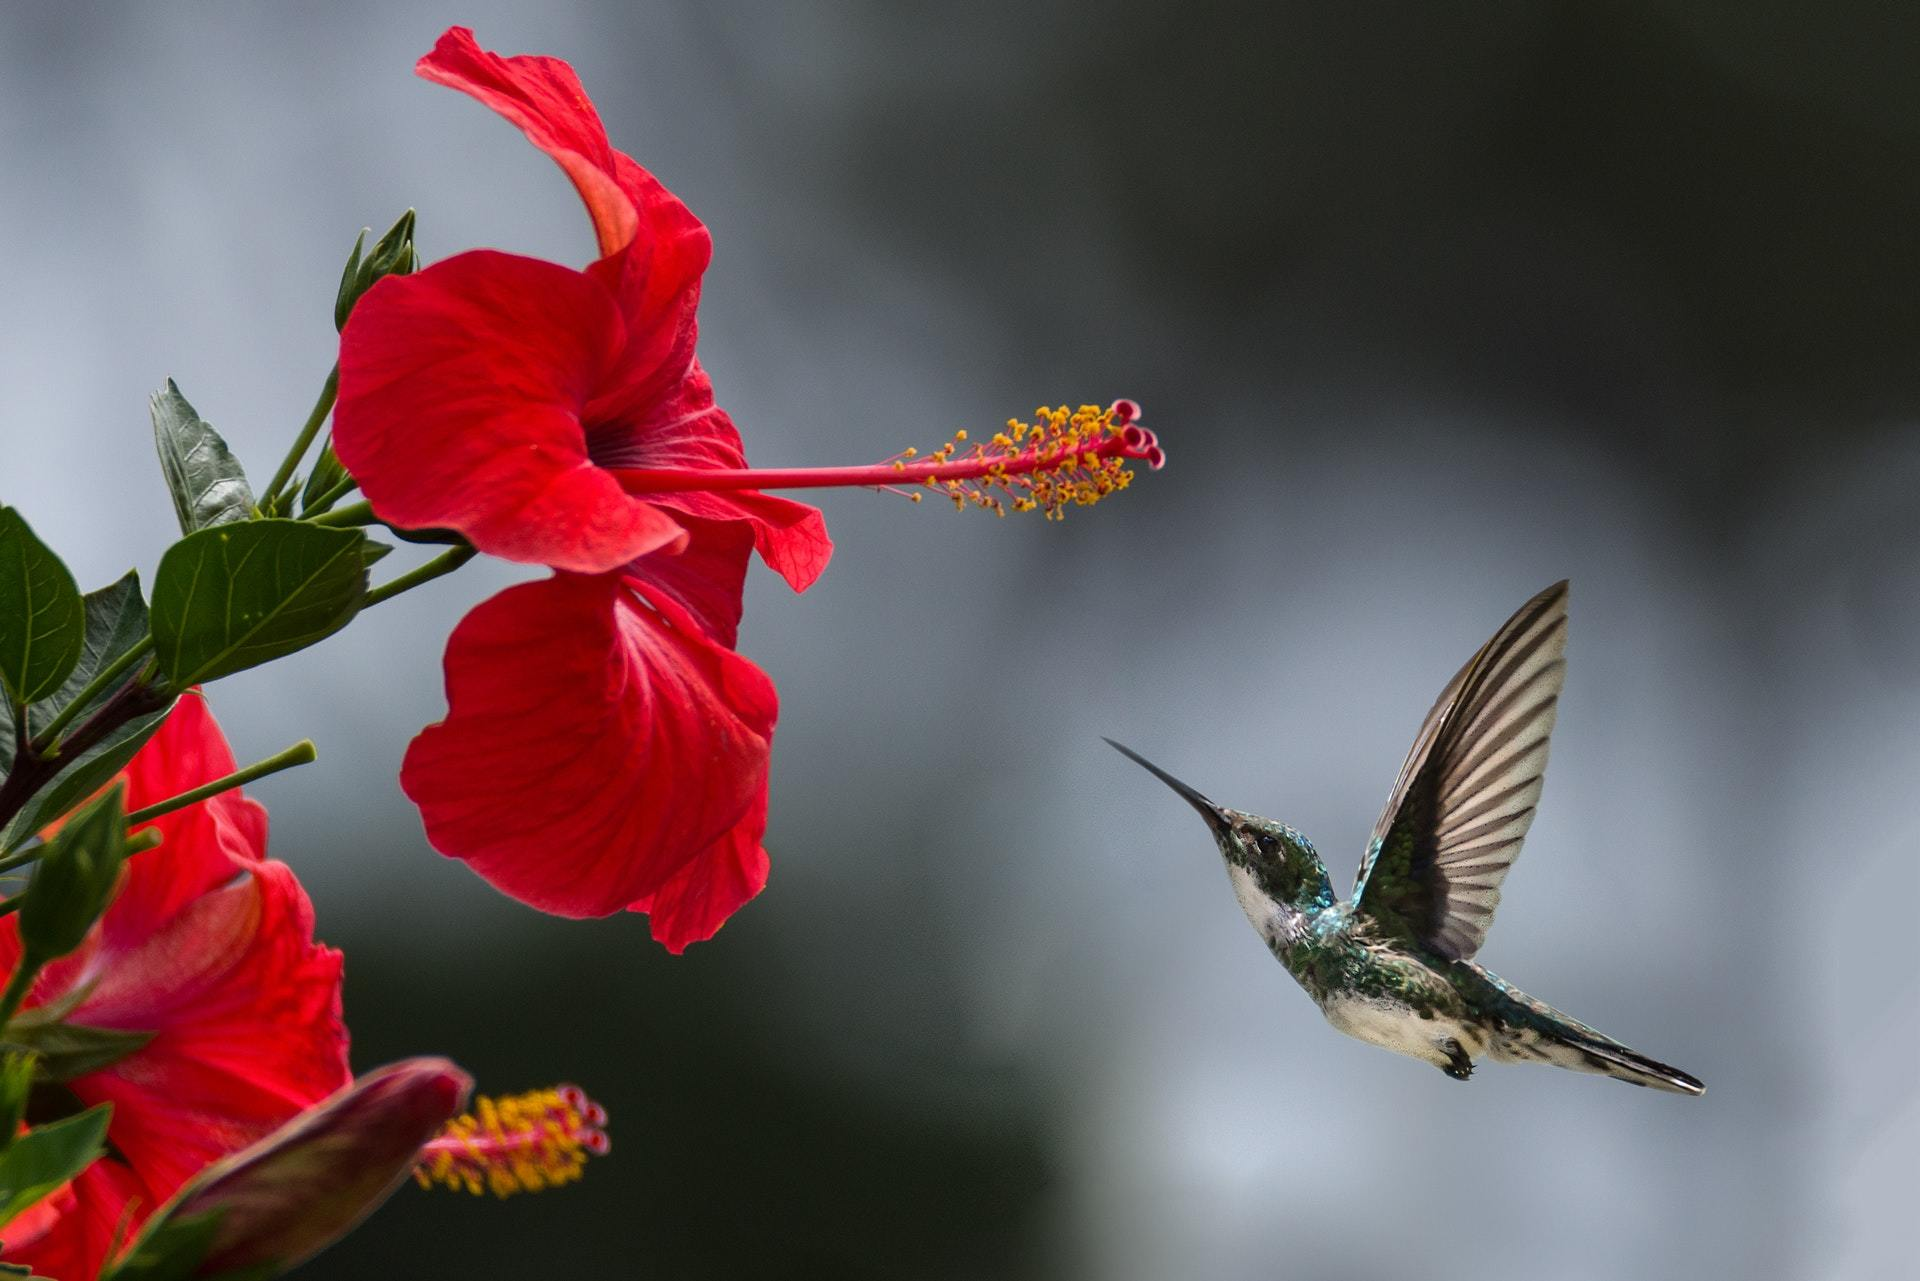 Hummingbird in flight toward red flower